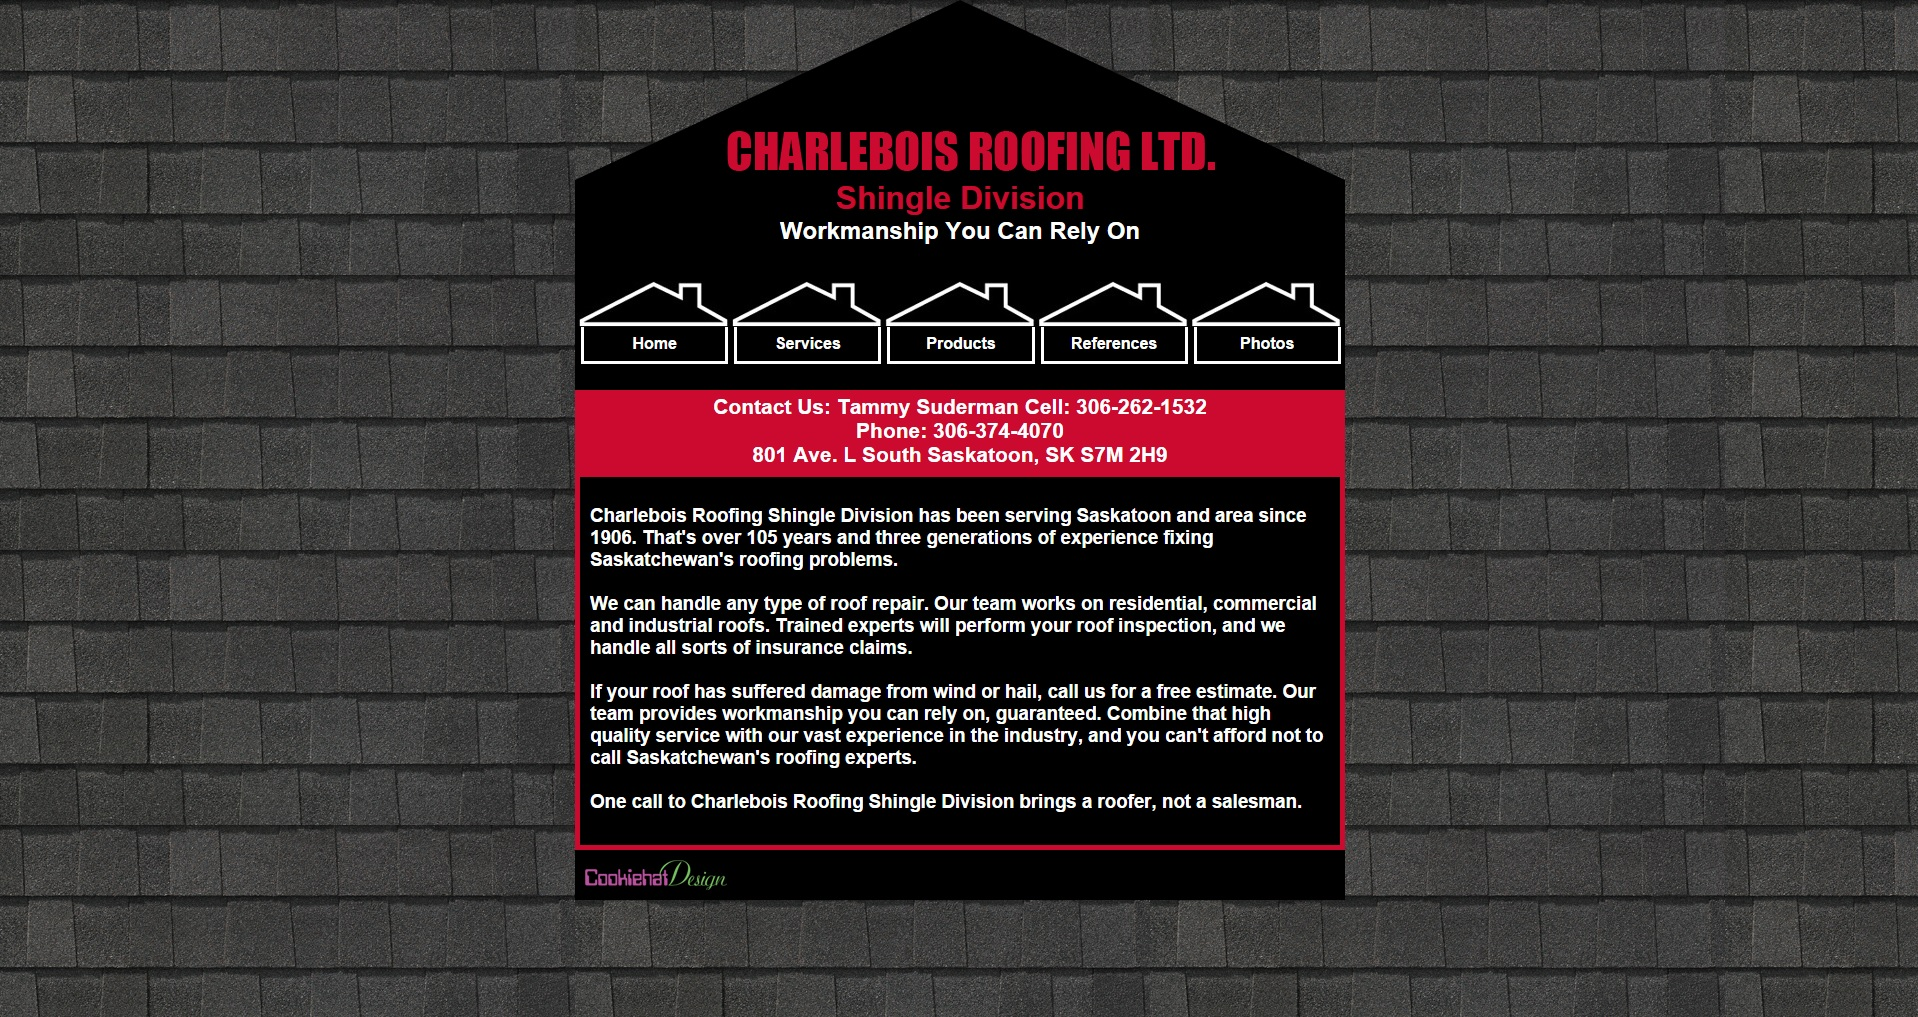 Charlebois Roofing Shingle Division Website